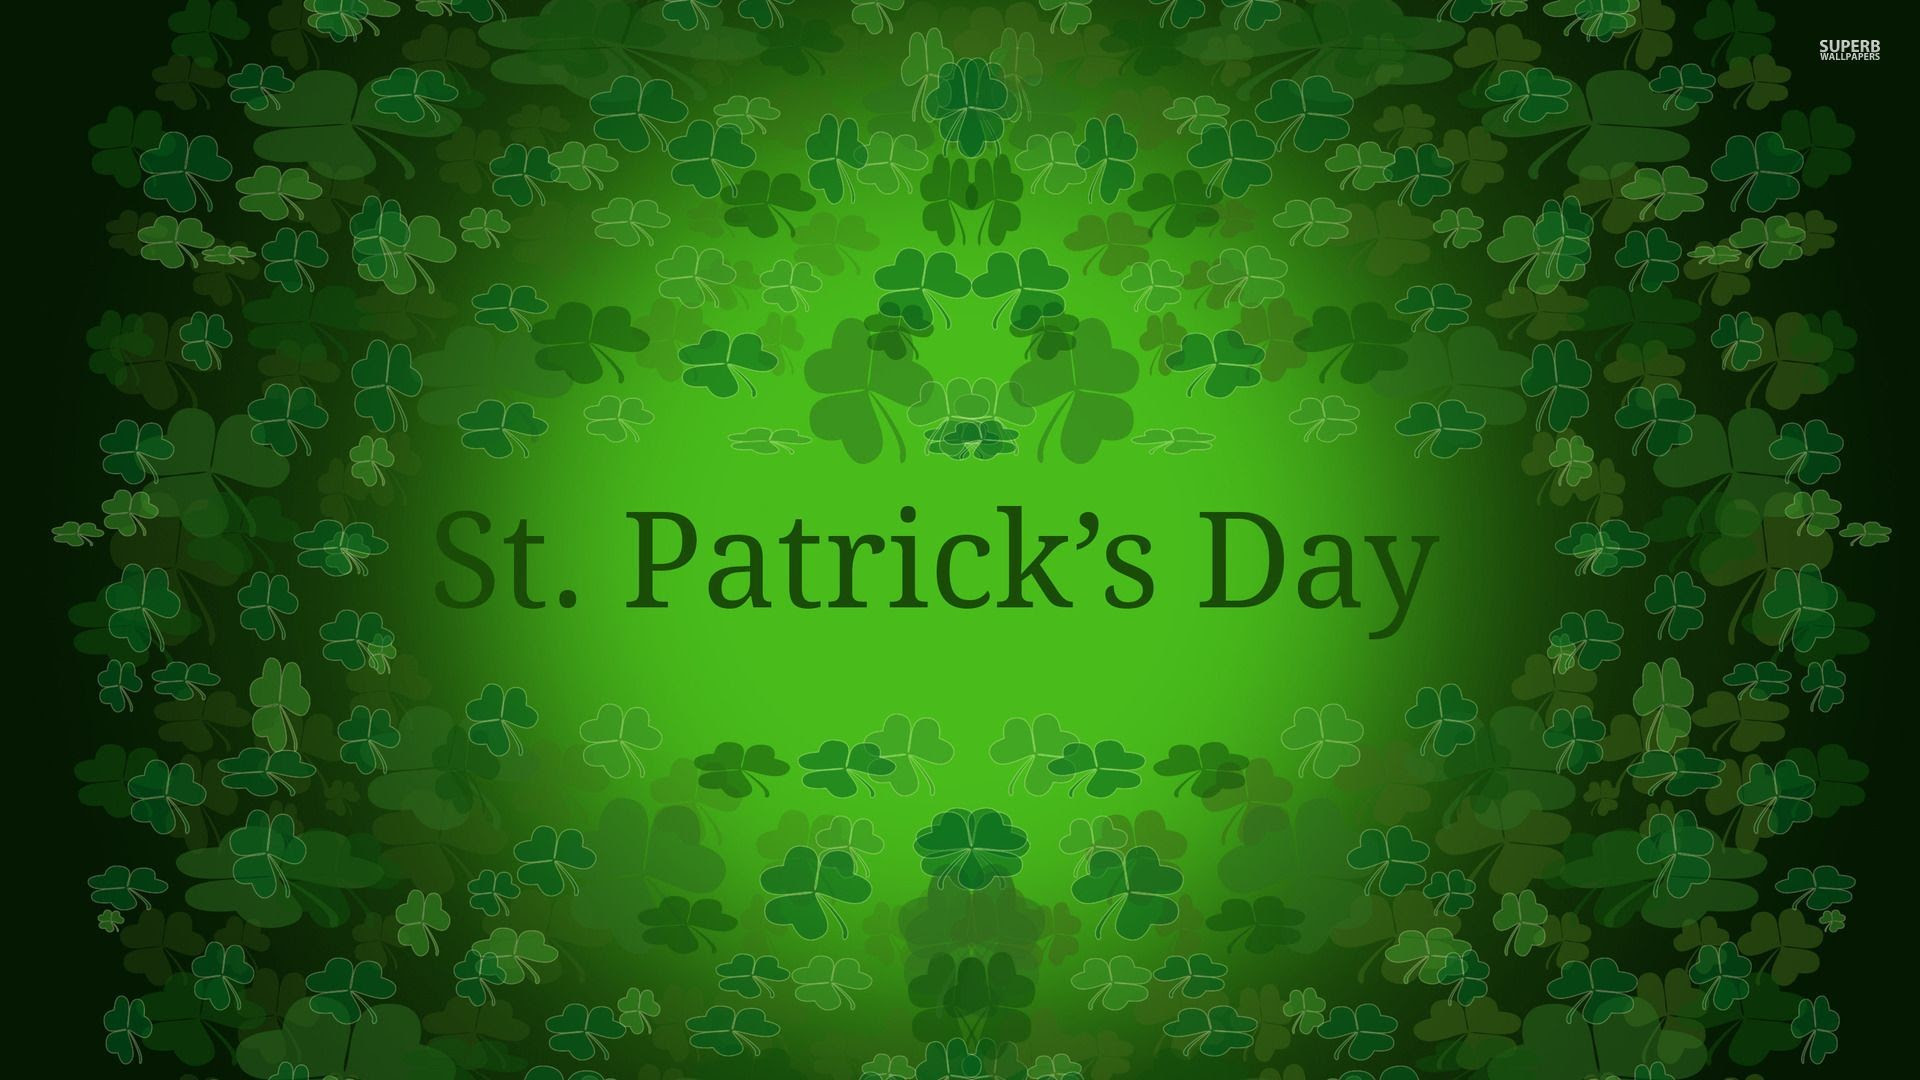 St Patricks Day Wallpaper Desktop 60 Images